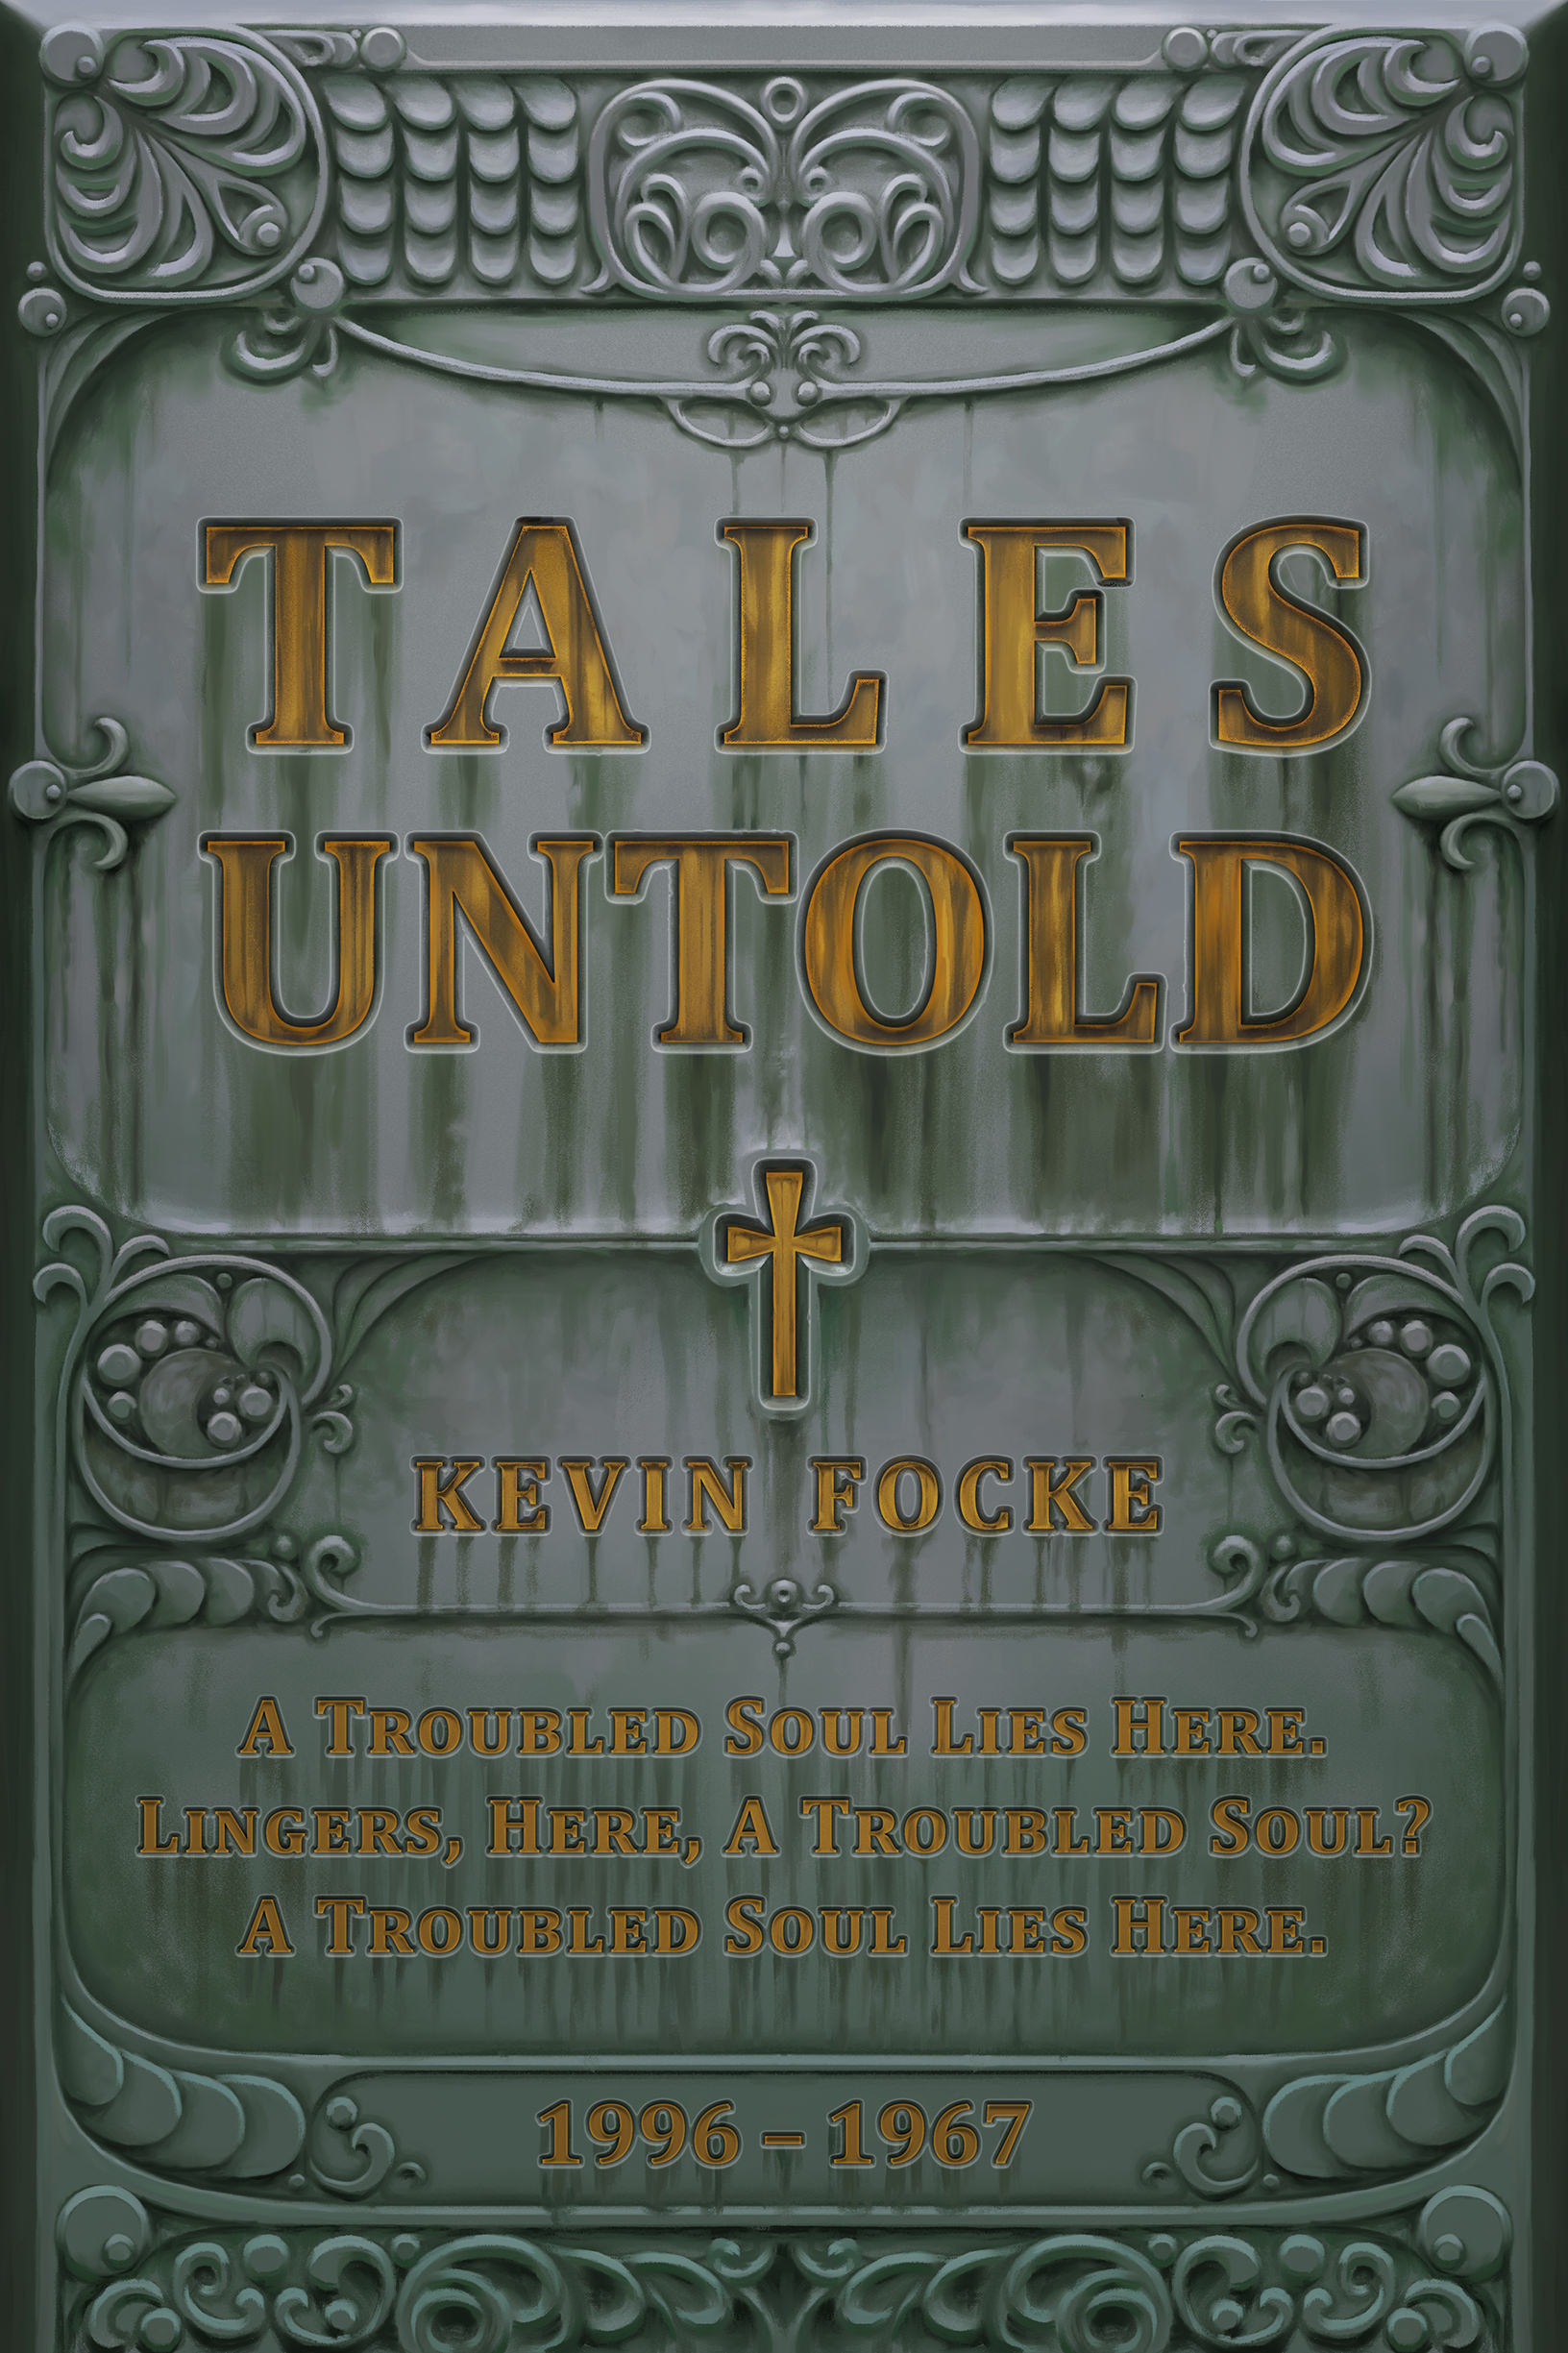 Tales Untold - 😋 Yummy! A delicious full story, for free 😋An author experiments with form and language to discover what an author was and could have been.*Includes 2 stories from the Harenge universe.